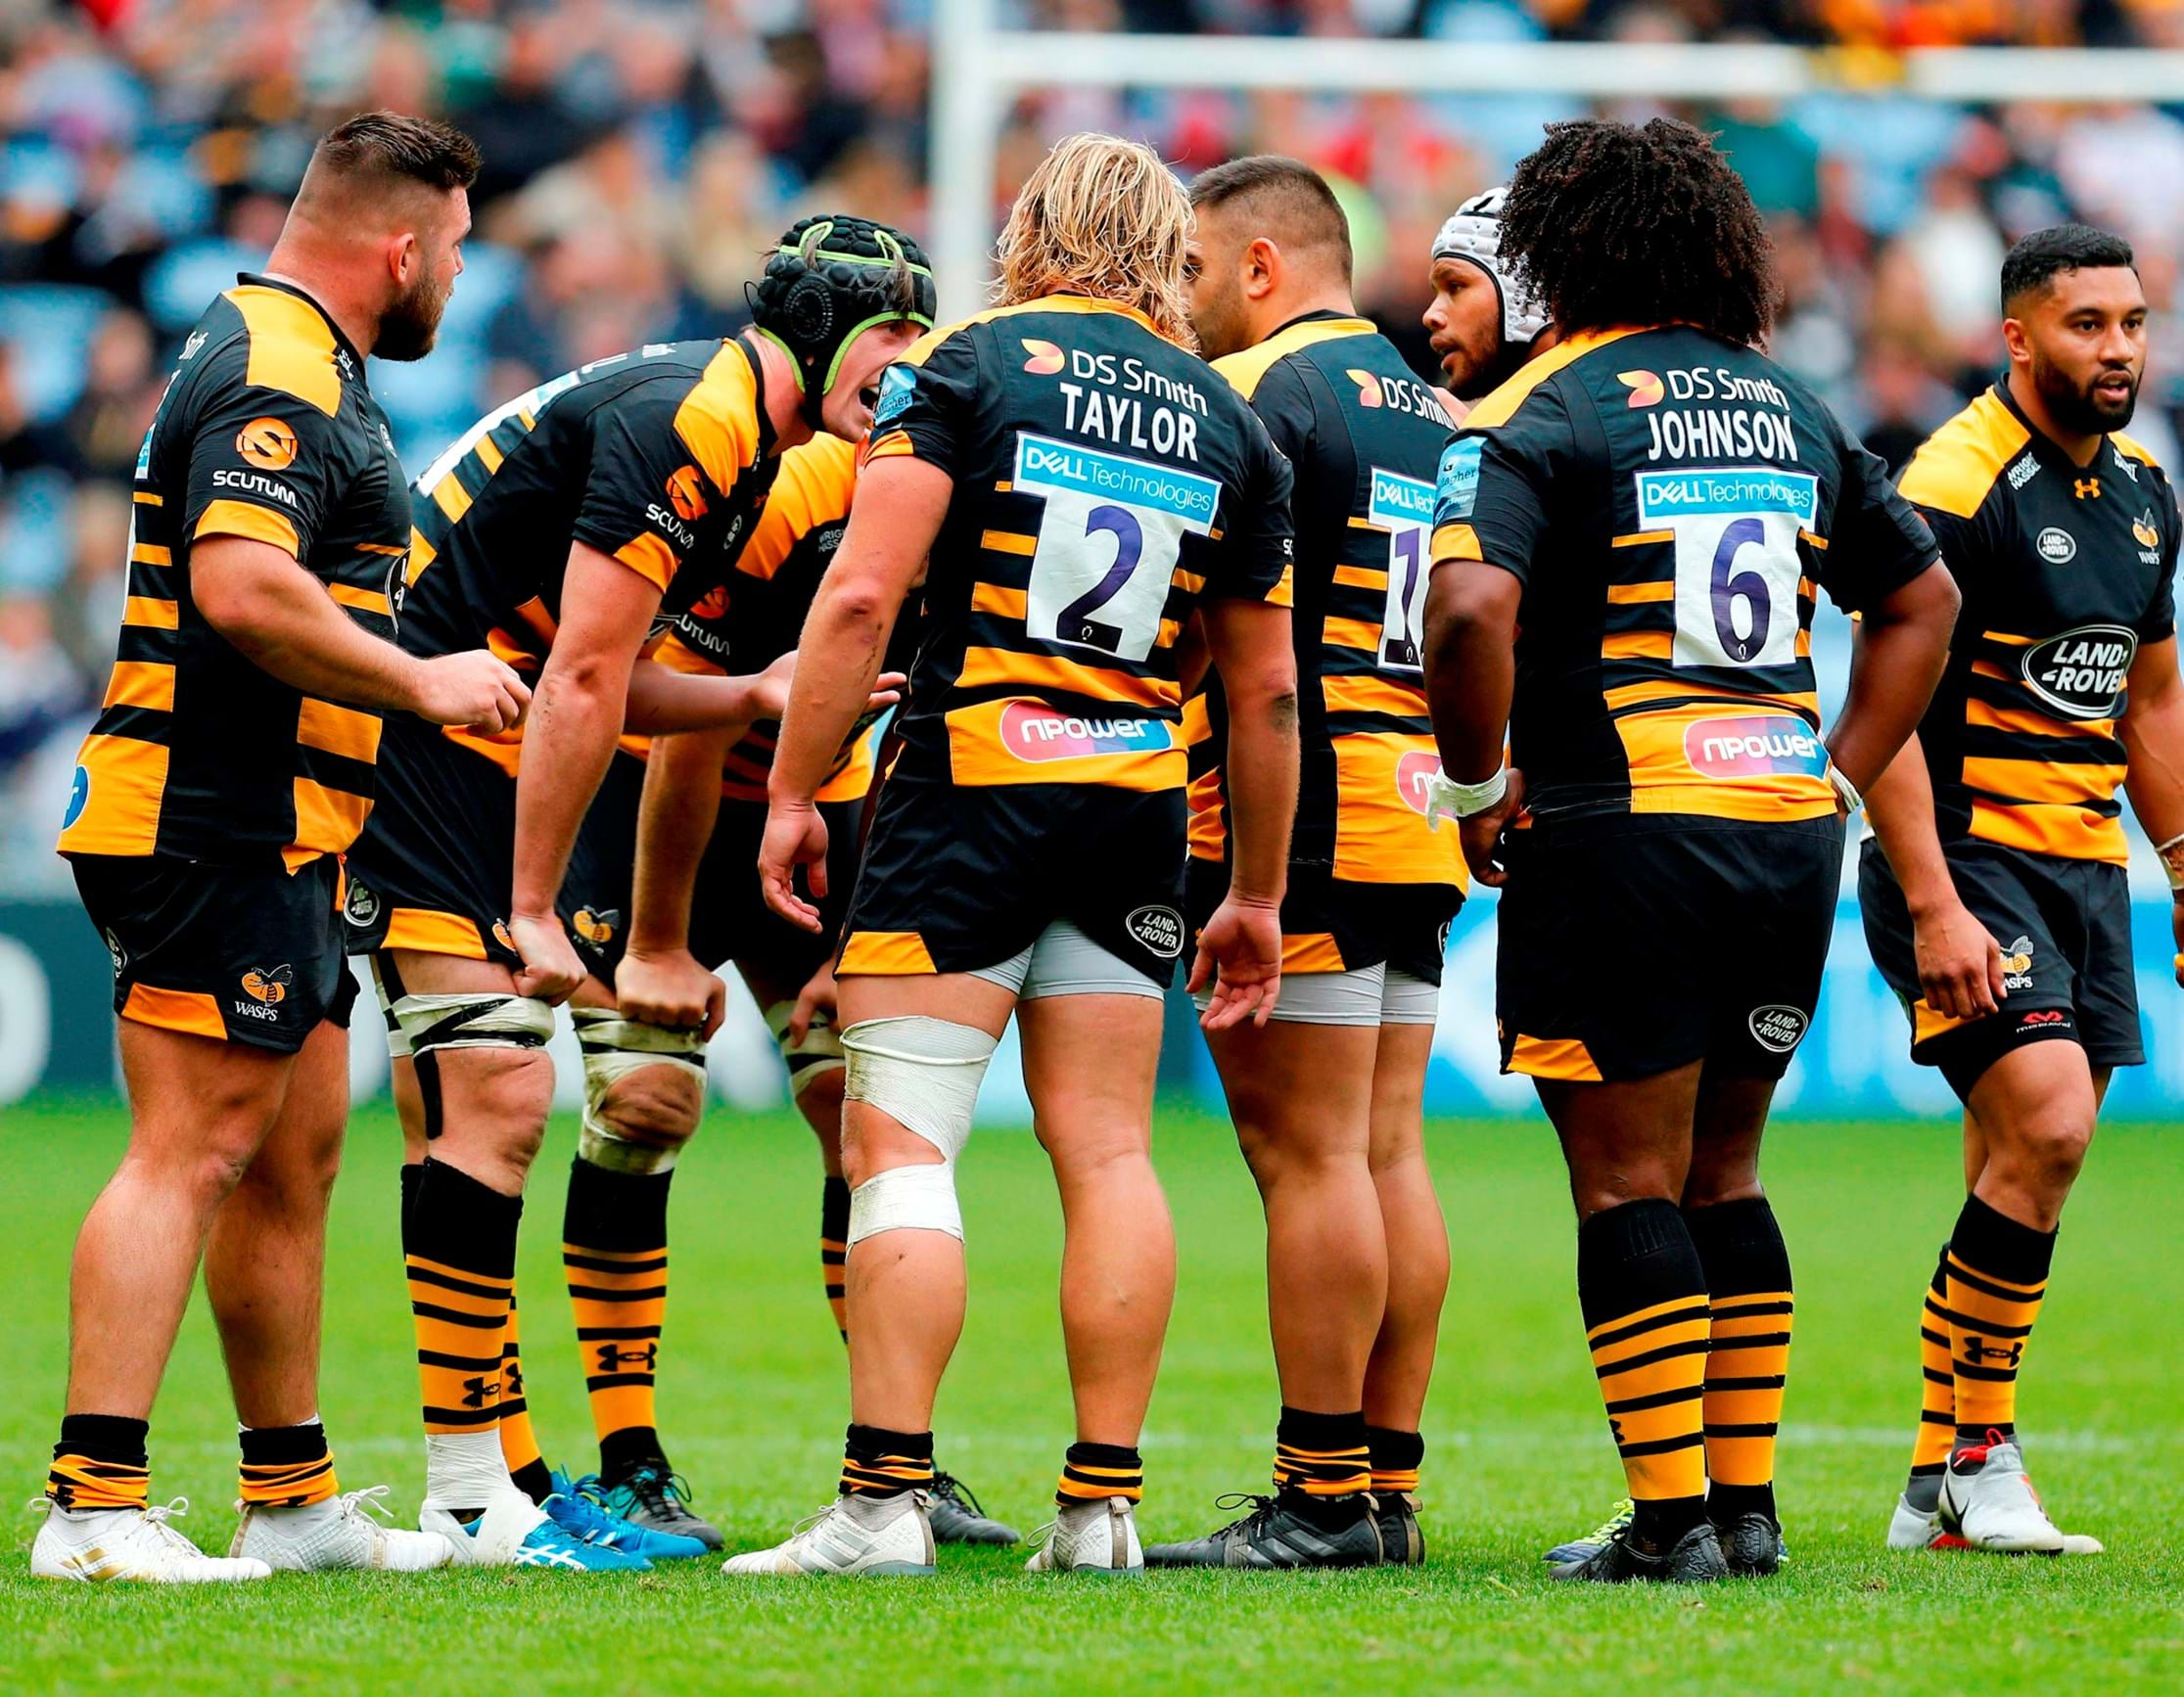 a013389ef45 Wasps unchanged for Champions Cup clash with Bath